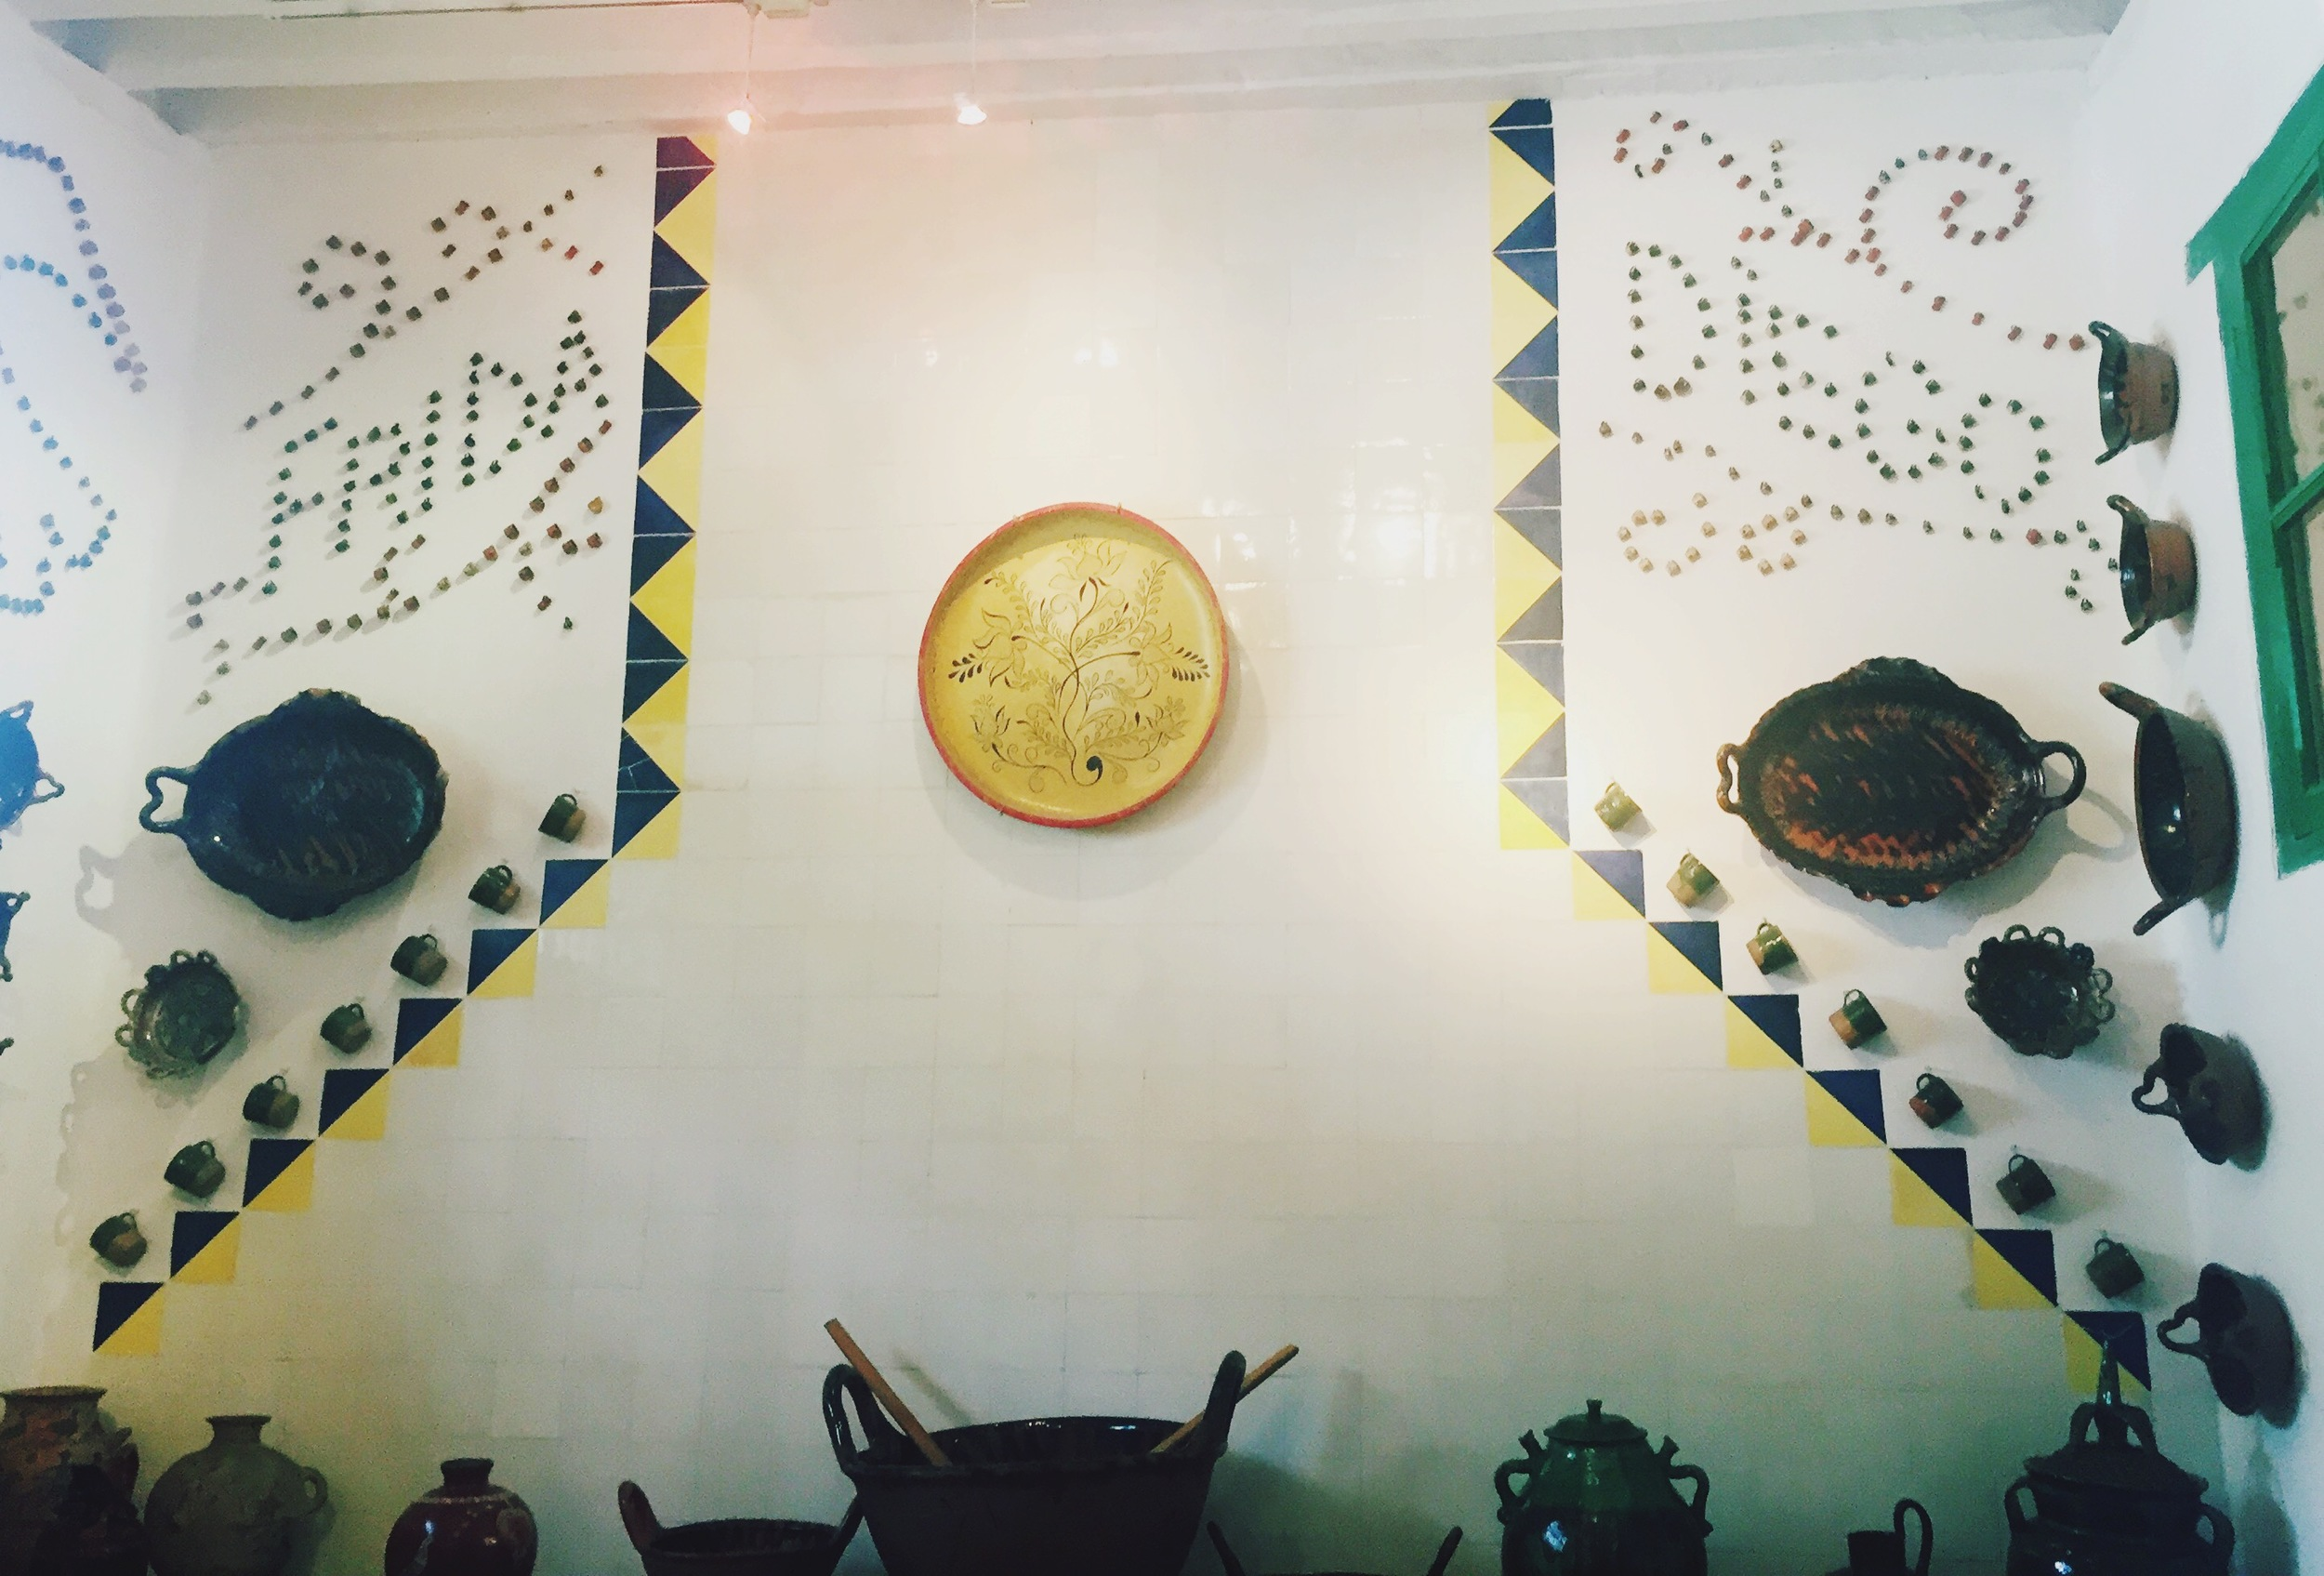 Their kitchen- each wall was covered in beautiful wares and artwork.